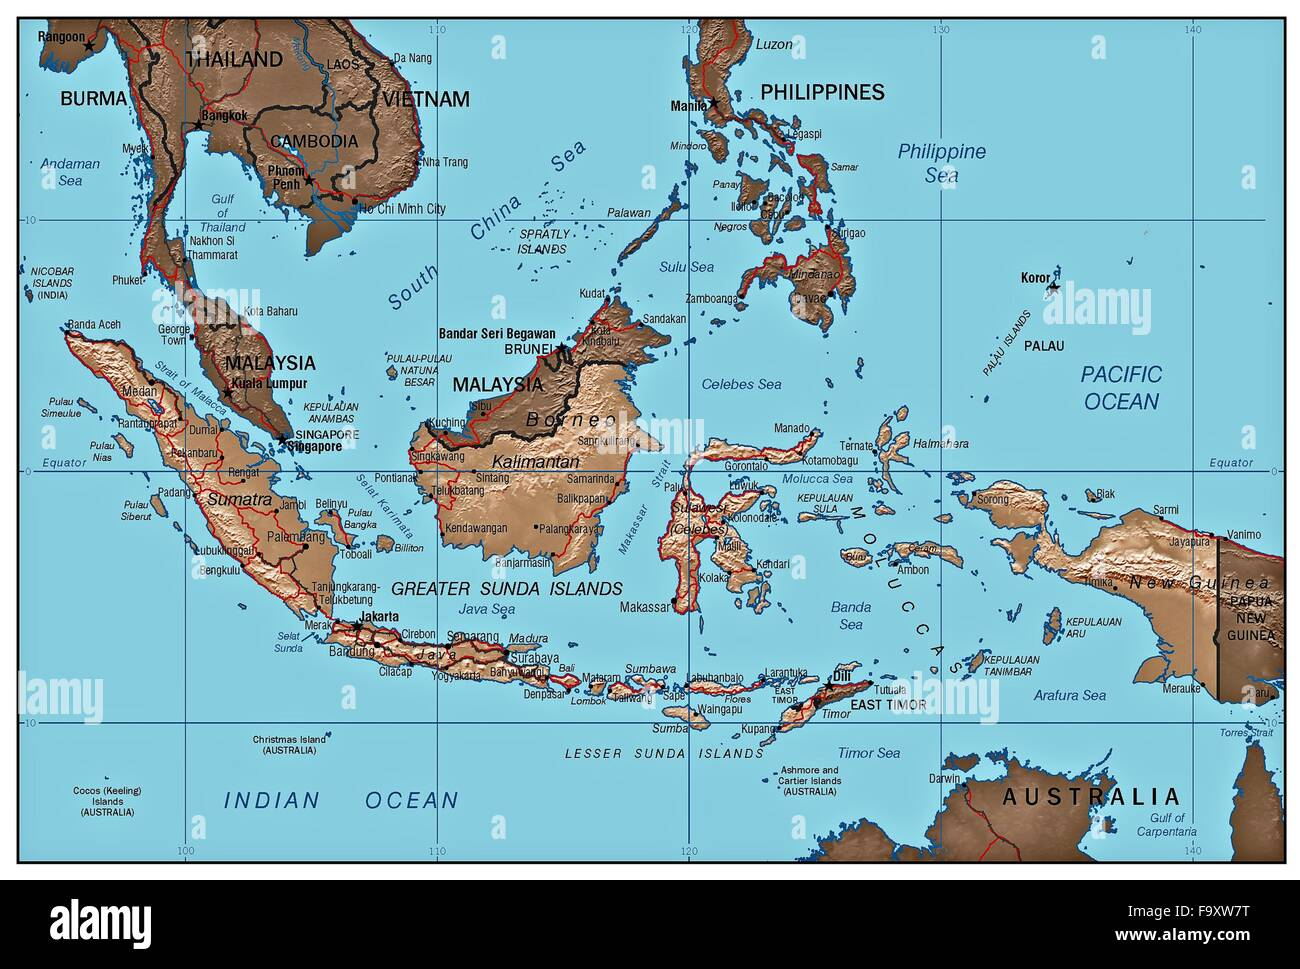 Indonesia Country Physiography Map Stock Photos & Indonesia ...